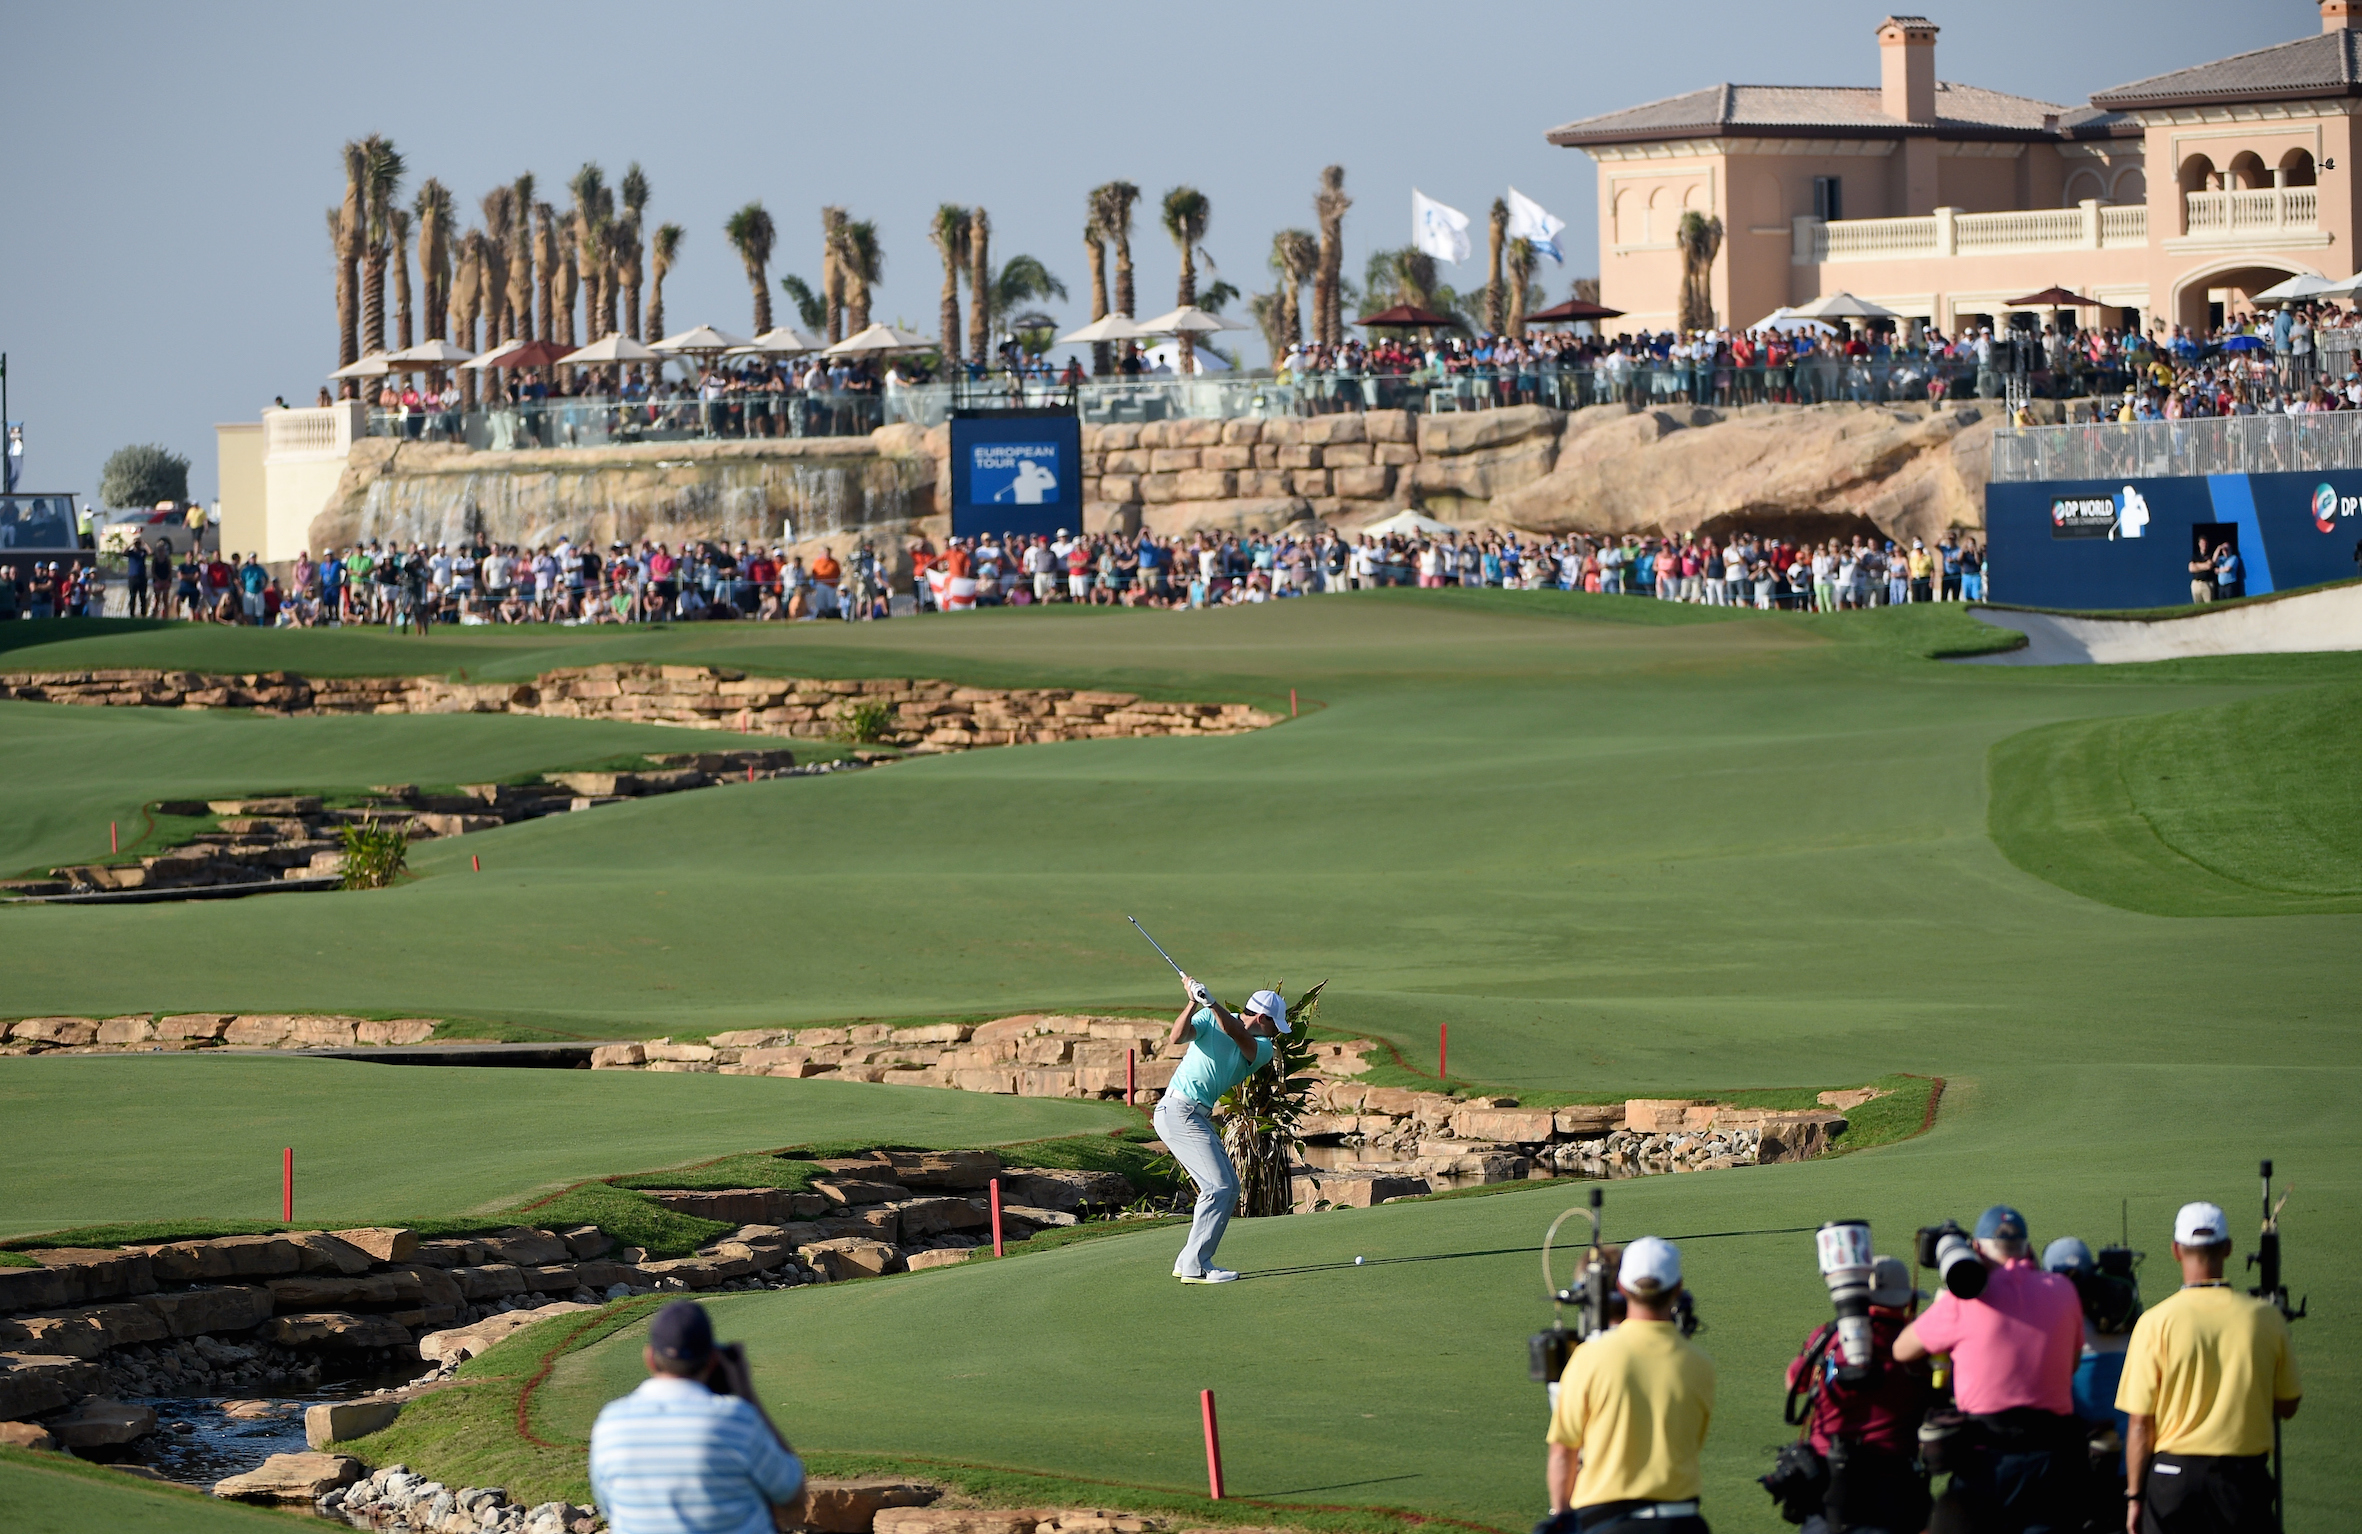 The European Tour Travel Club offers consumers an array of experiences unique to the European Tour